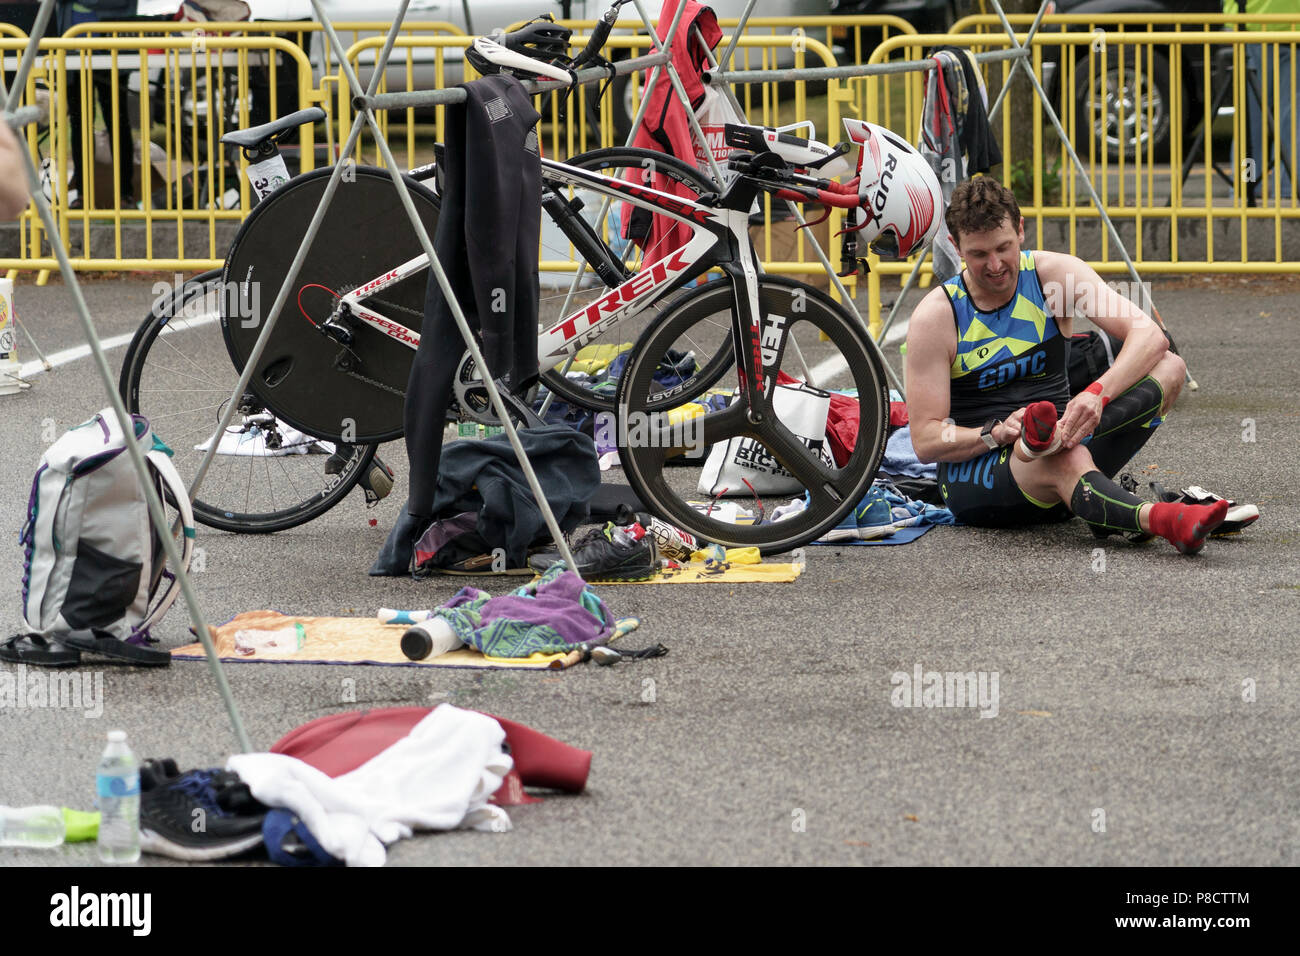 Matthew Tebo during the T2 bike to run transition in the 2018 Hague Endurance Festival Sprint Triathlon - Stock Image